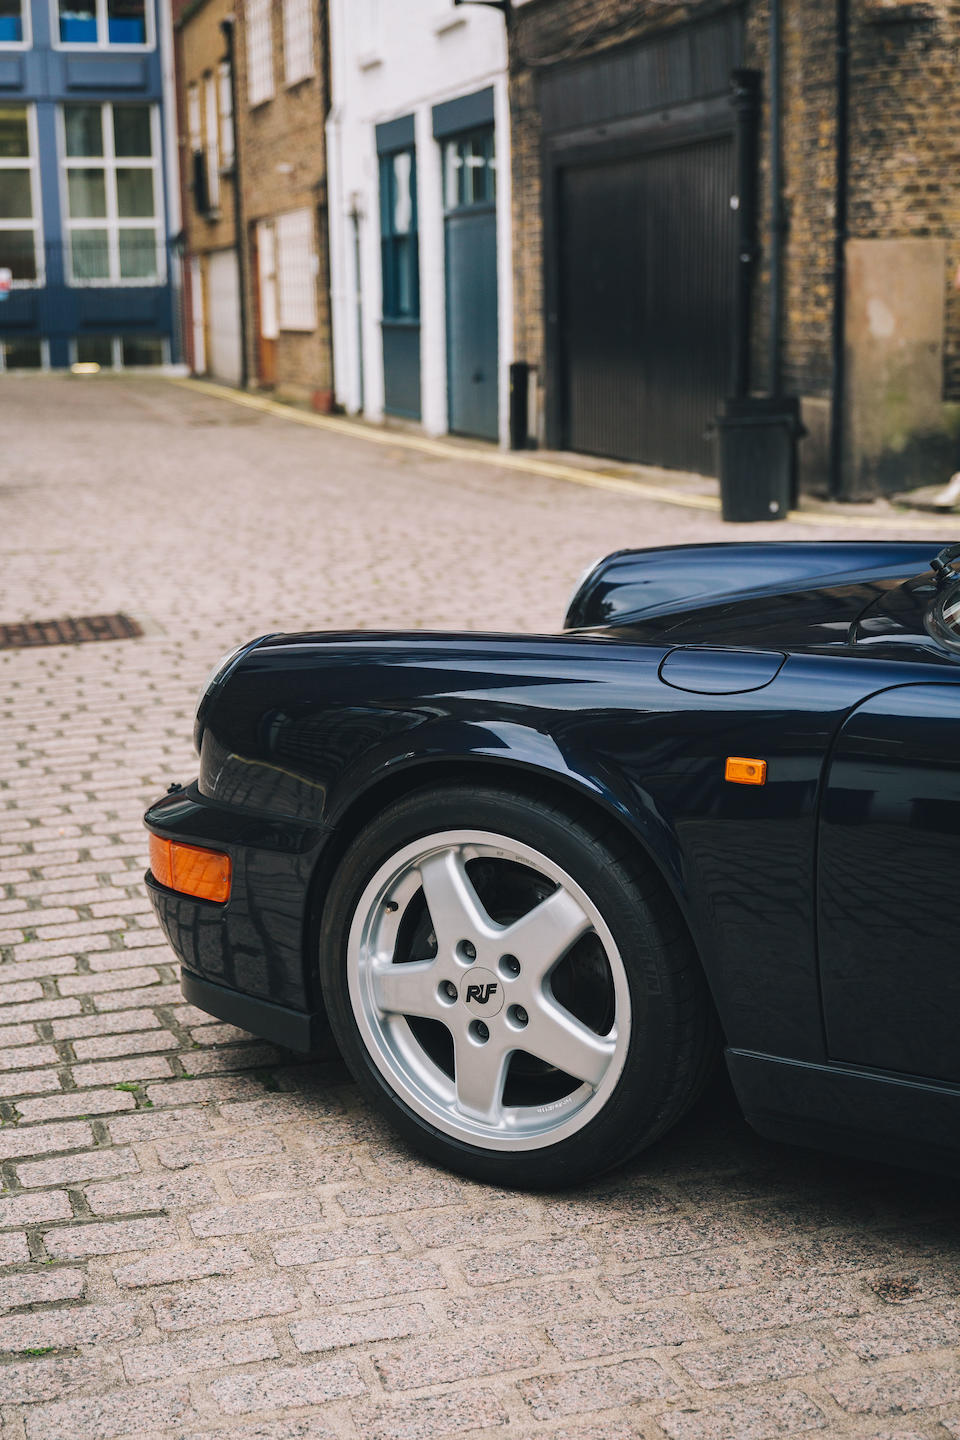 The ex-UK RUF demonstrator,1993 RUF RCT Coupé  Chassis no. WP0ZZZ96ZNS400165